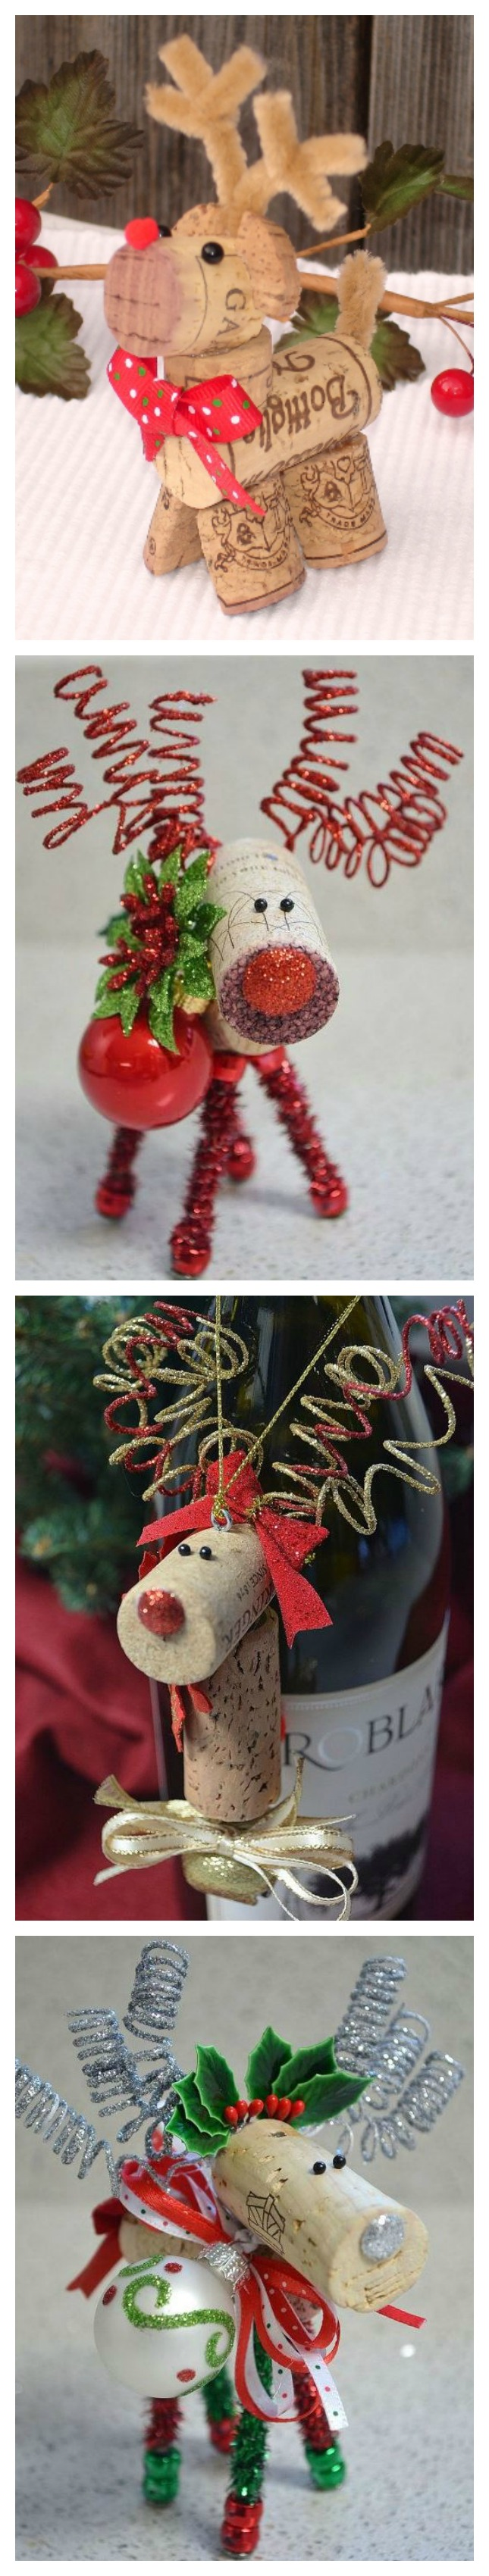 Cork Reindeer Craft Ideas